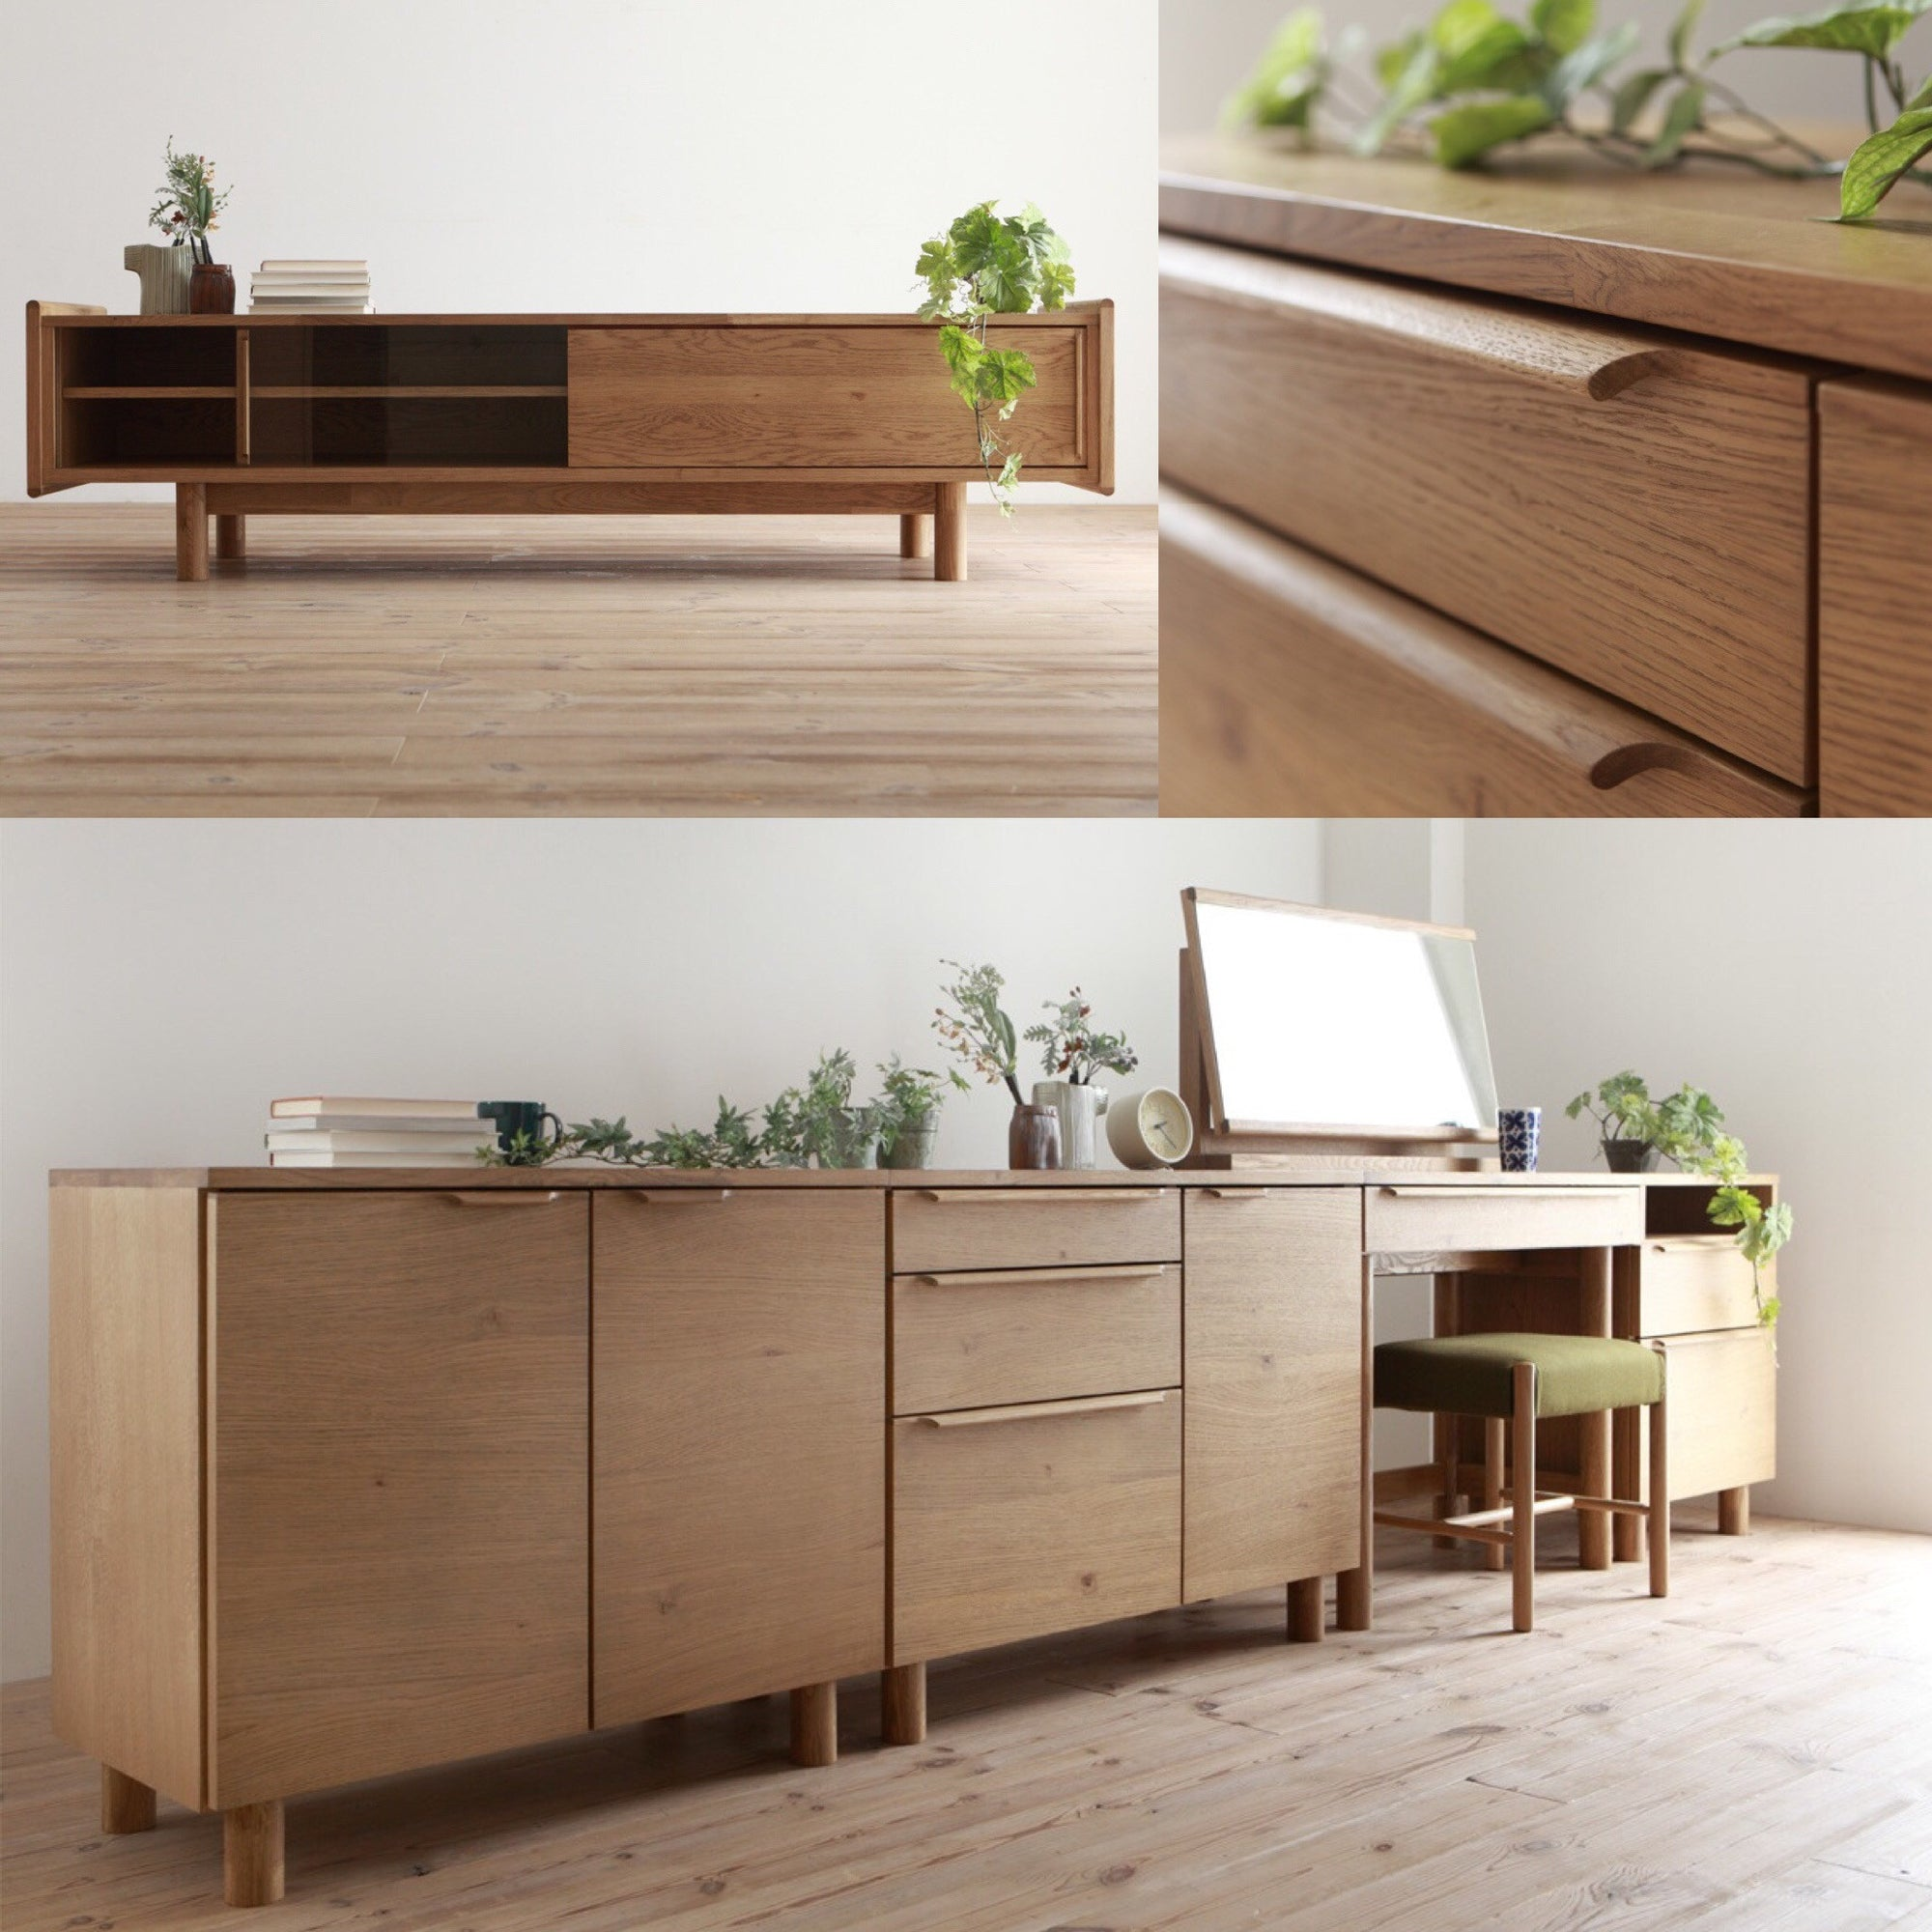 Source Japan - Beautiful Furniture, Smart Design